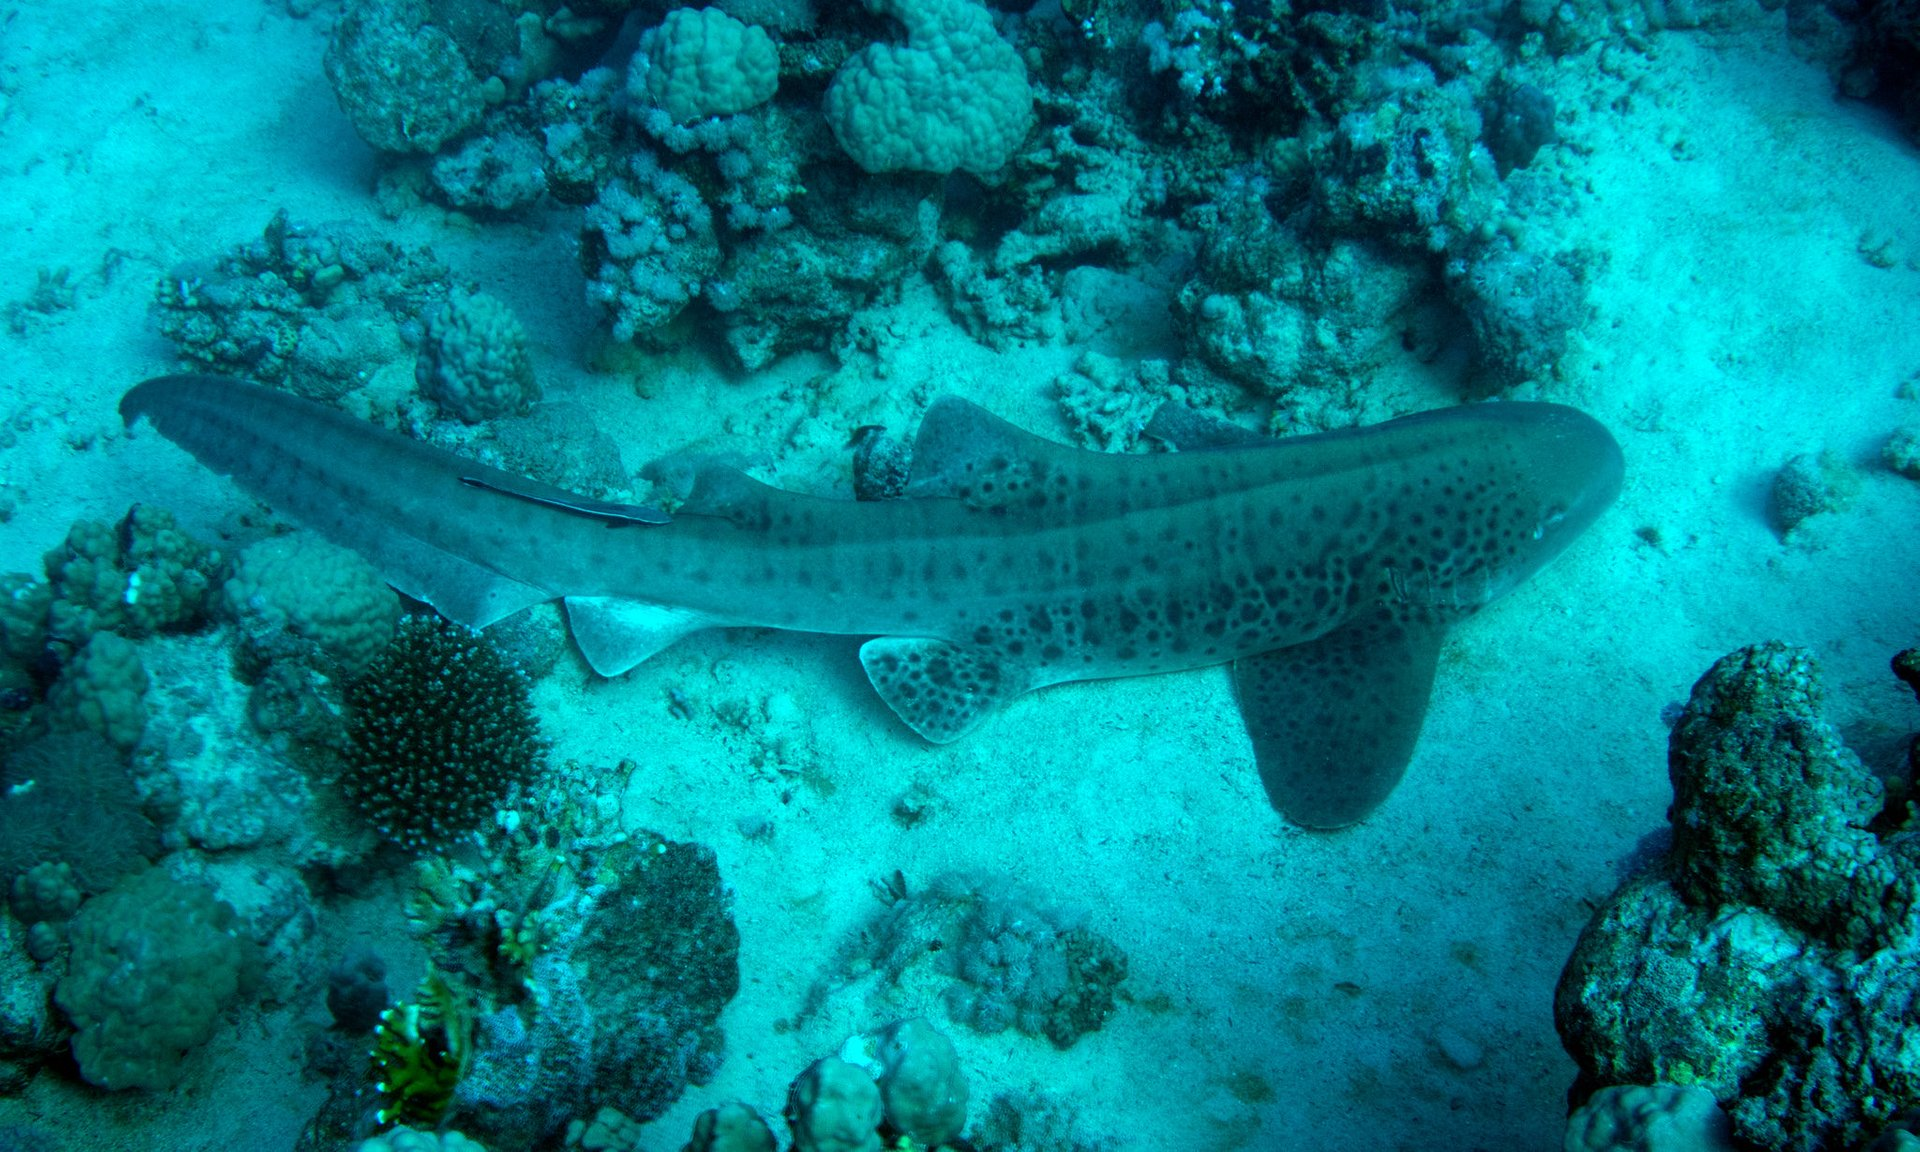 Leopard Shark off Tiran Island, Red Sea 2020